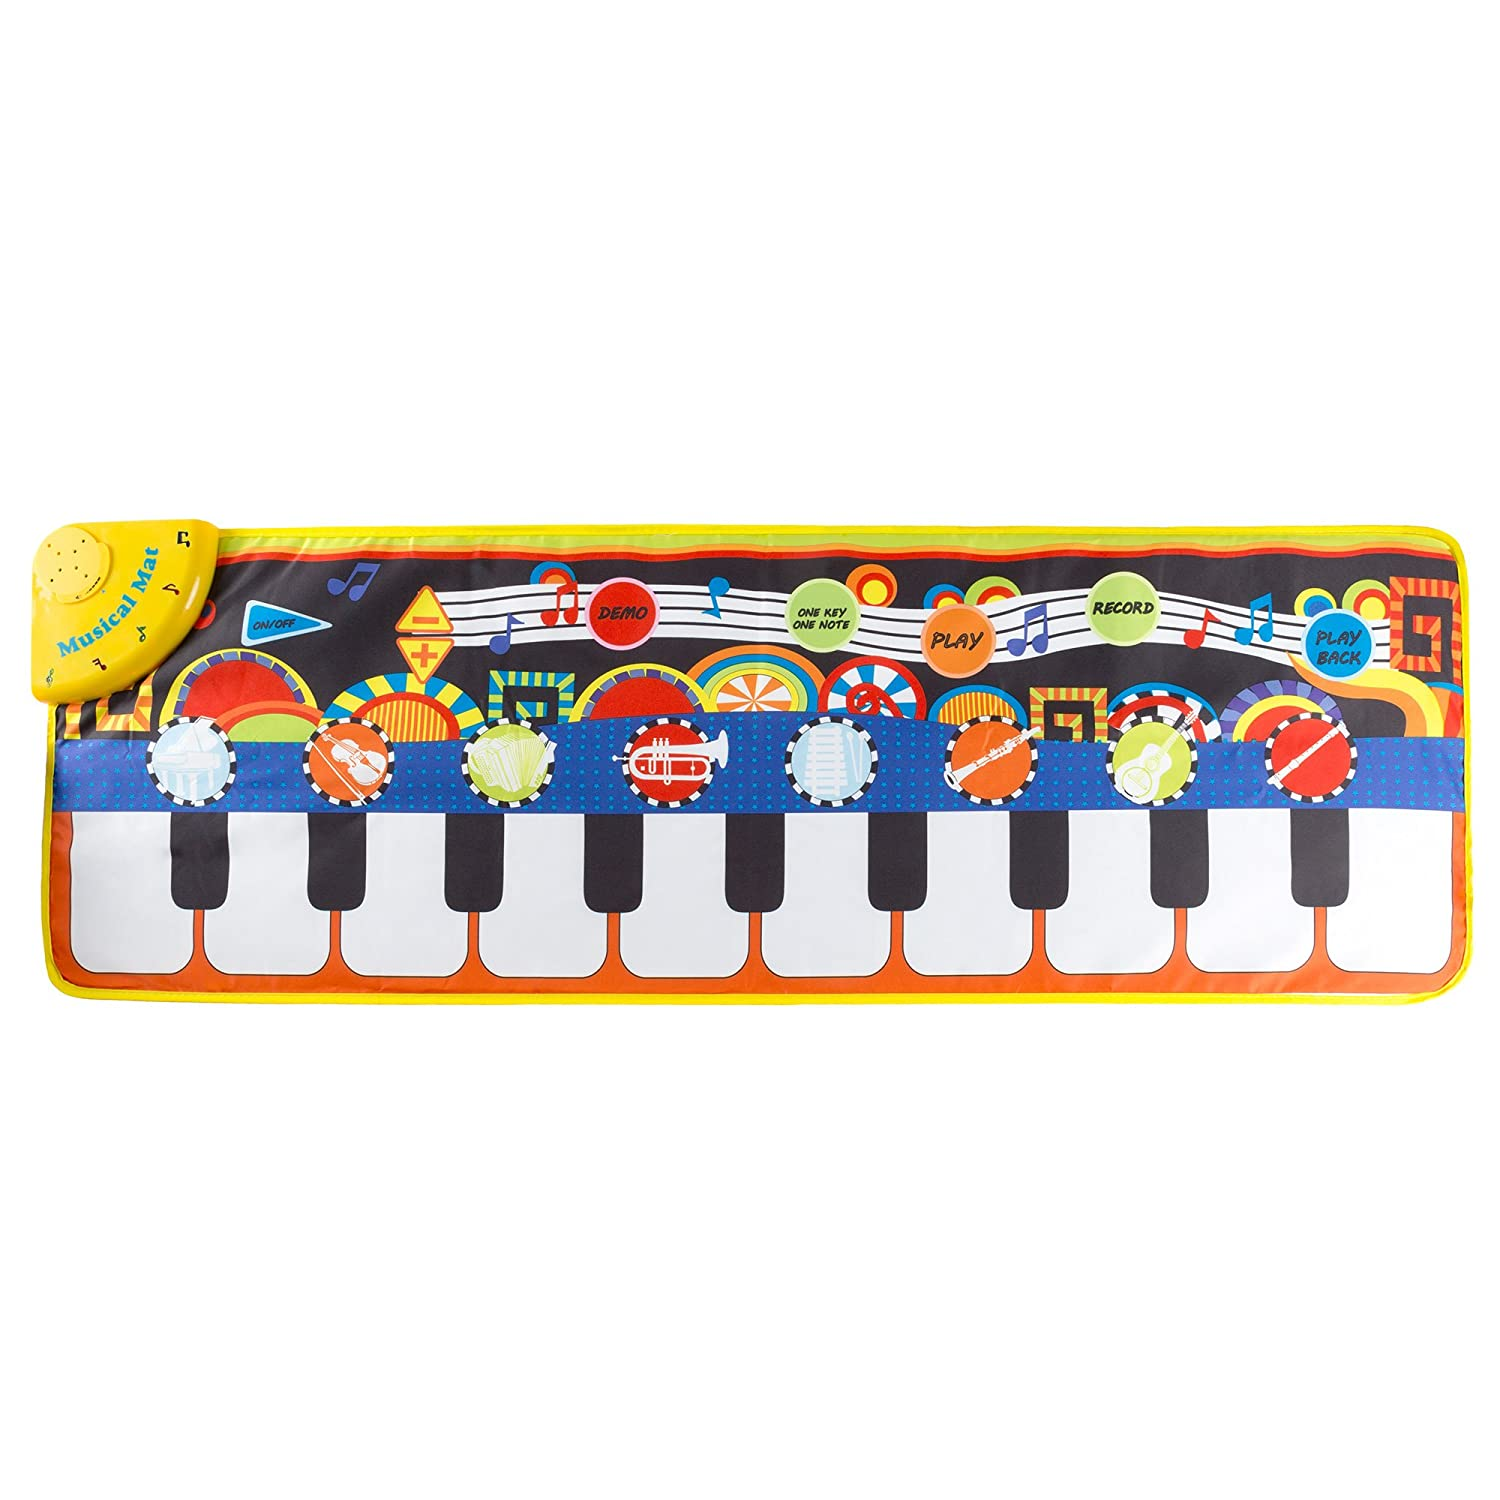 Playback Record Step Piano Mat for Kids Instrument Sounds Boys and Girls by Hey Demo Modes for Toddlers Keyboard Mat with Musical Keys Play!